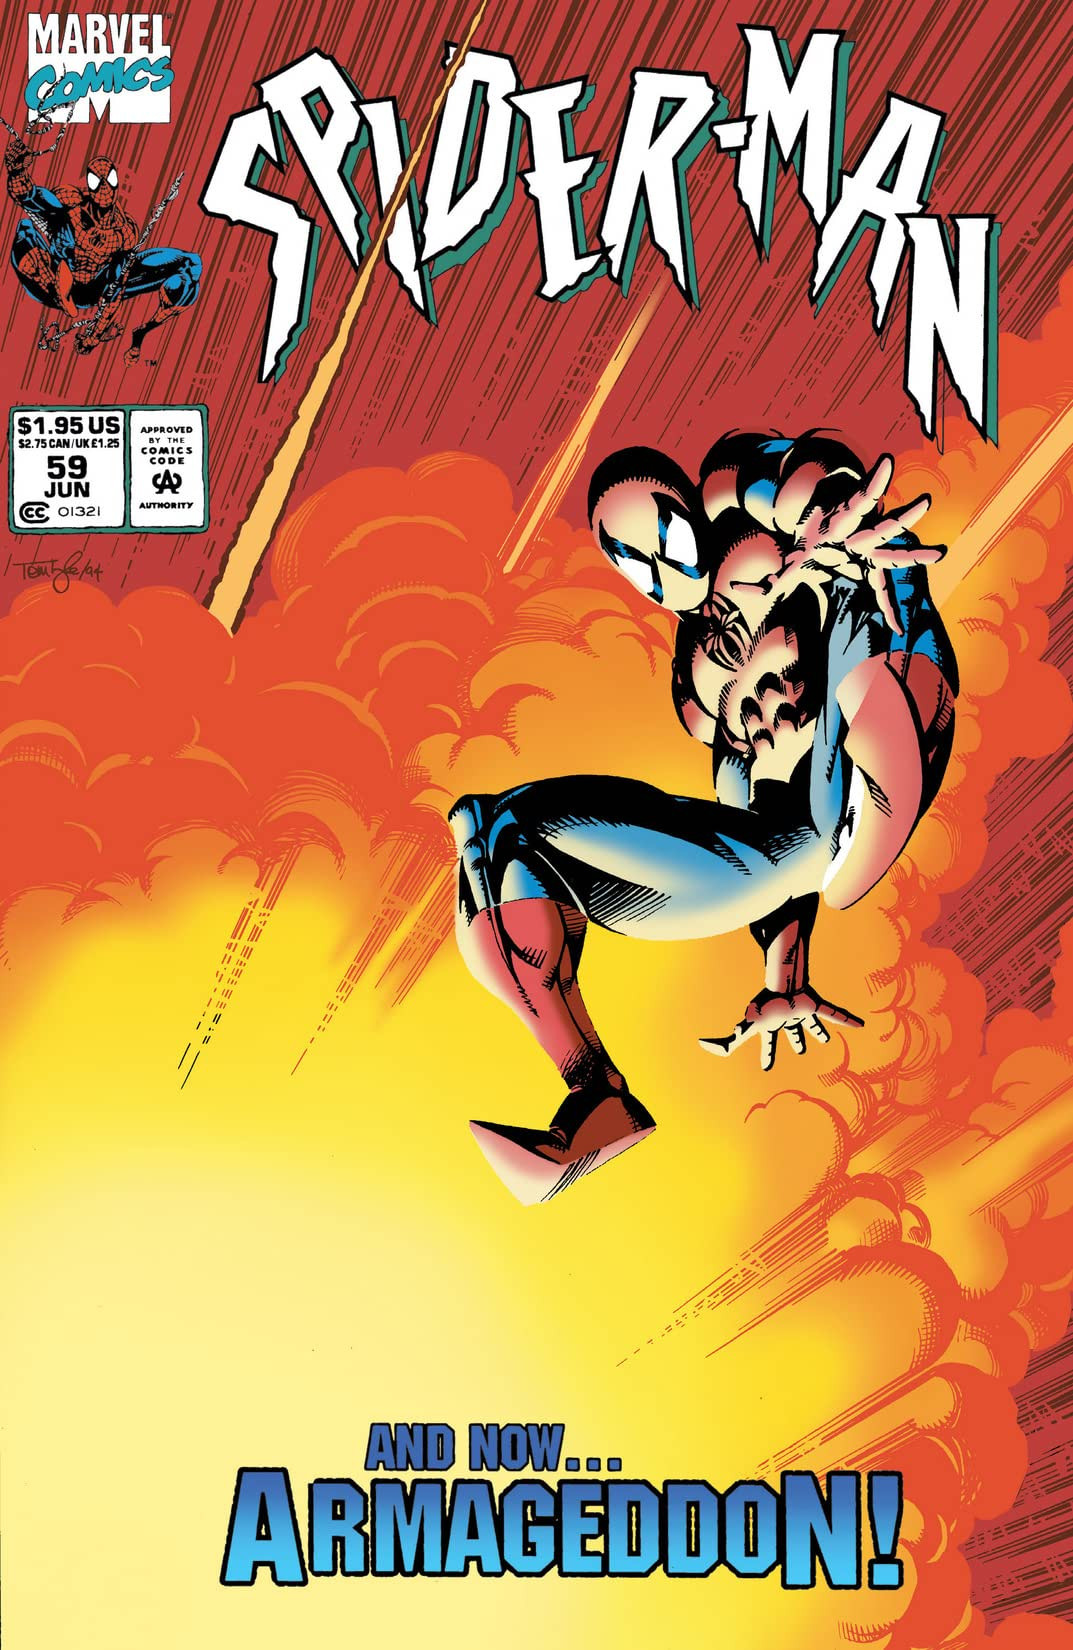 Spider-Man Vol 1 59